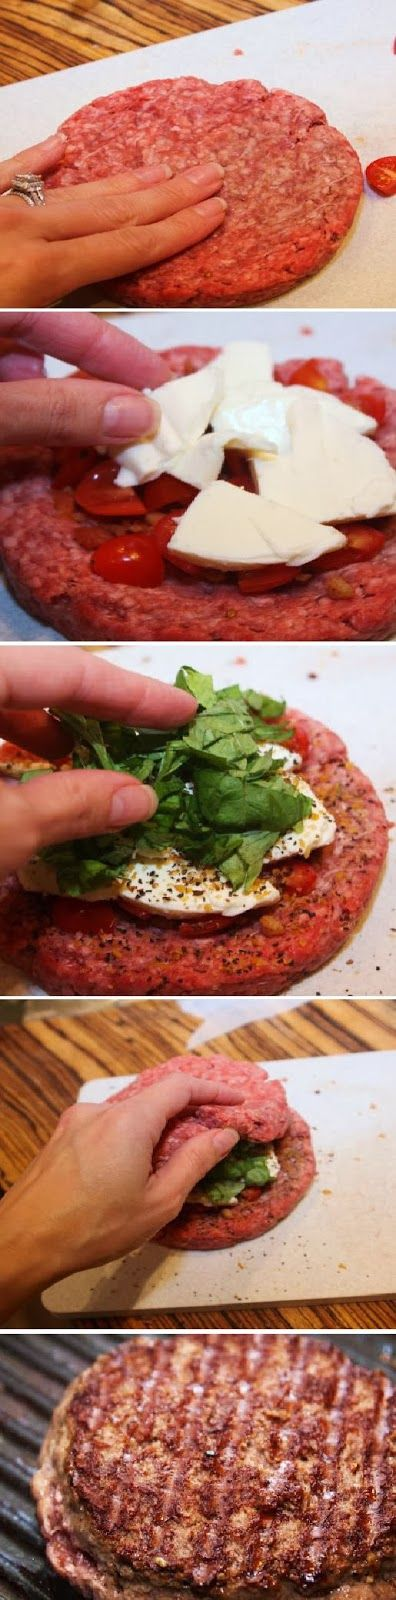 Food & Drink: How To Make Caprese Stuffed Burgers